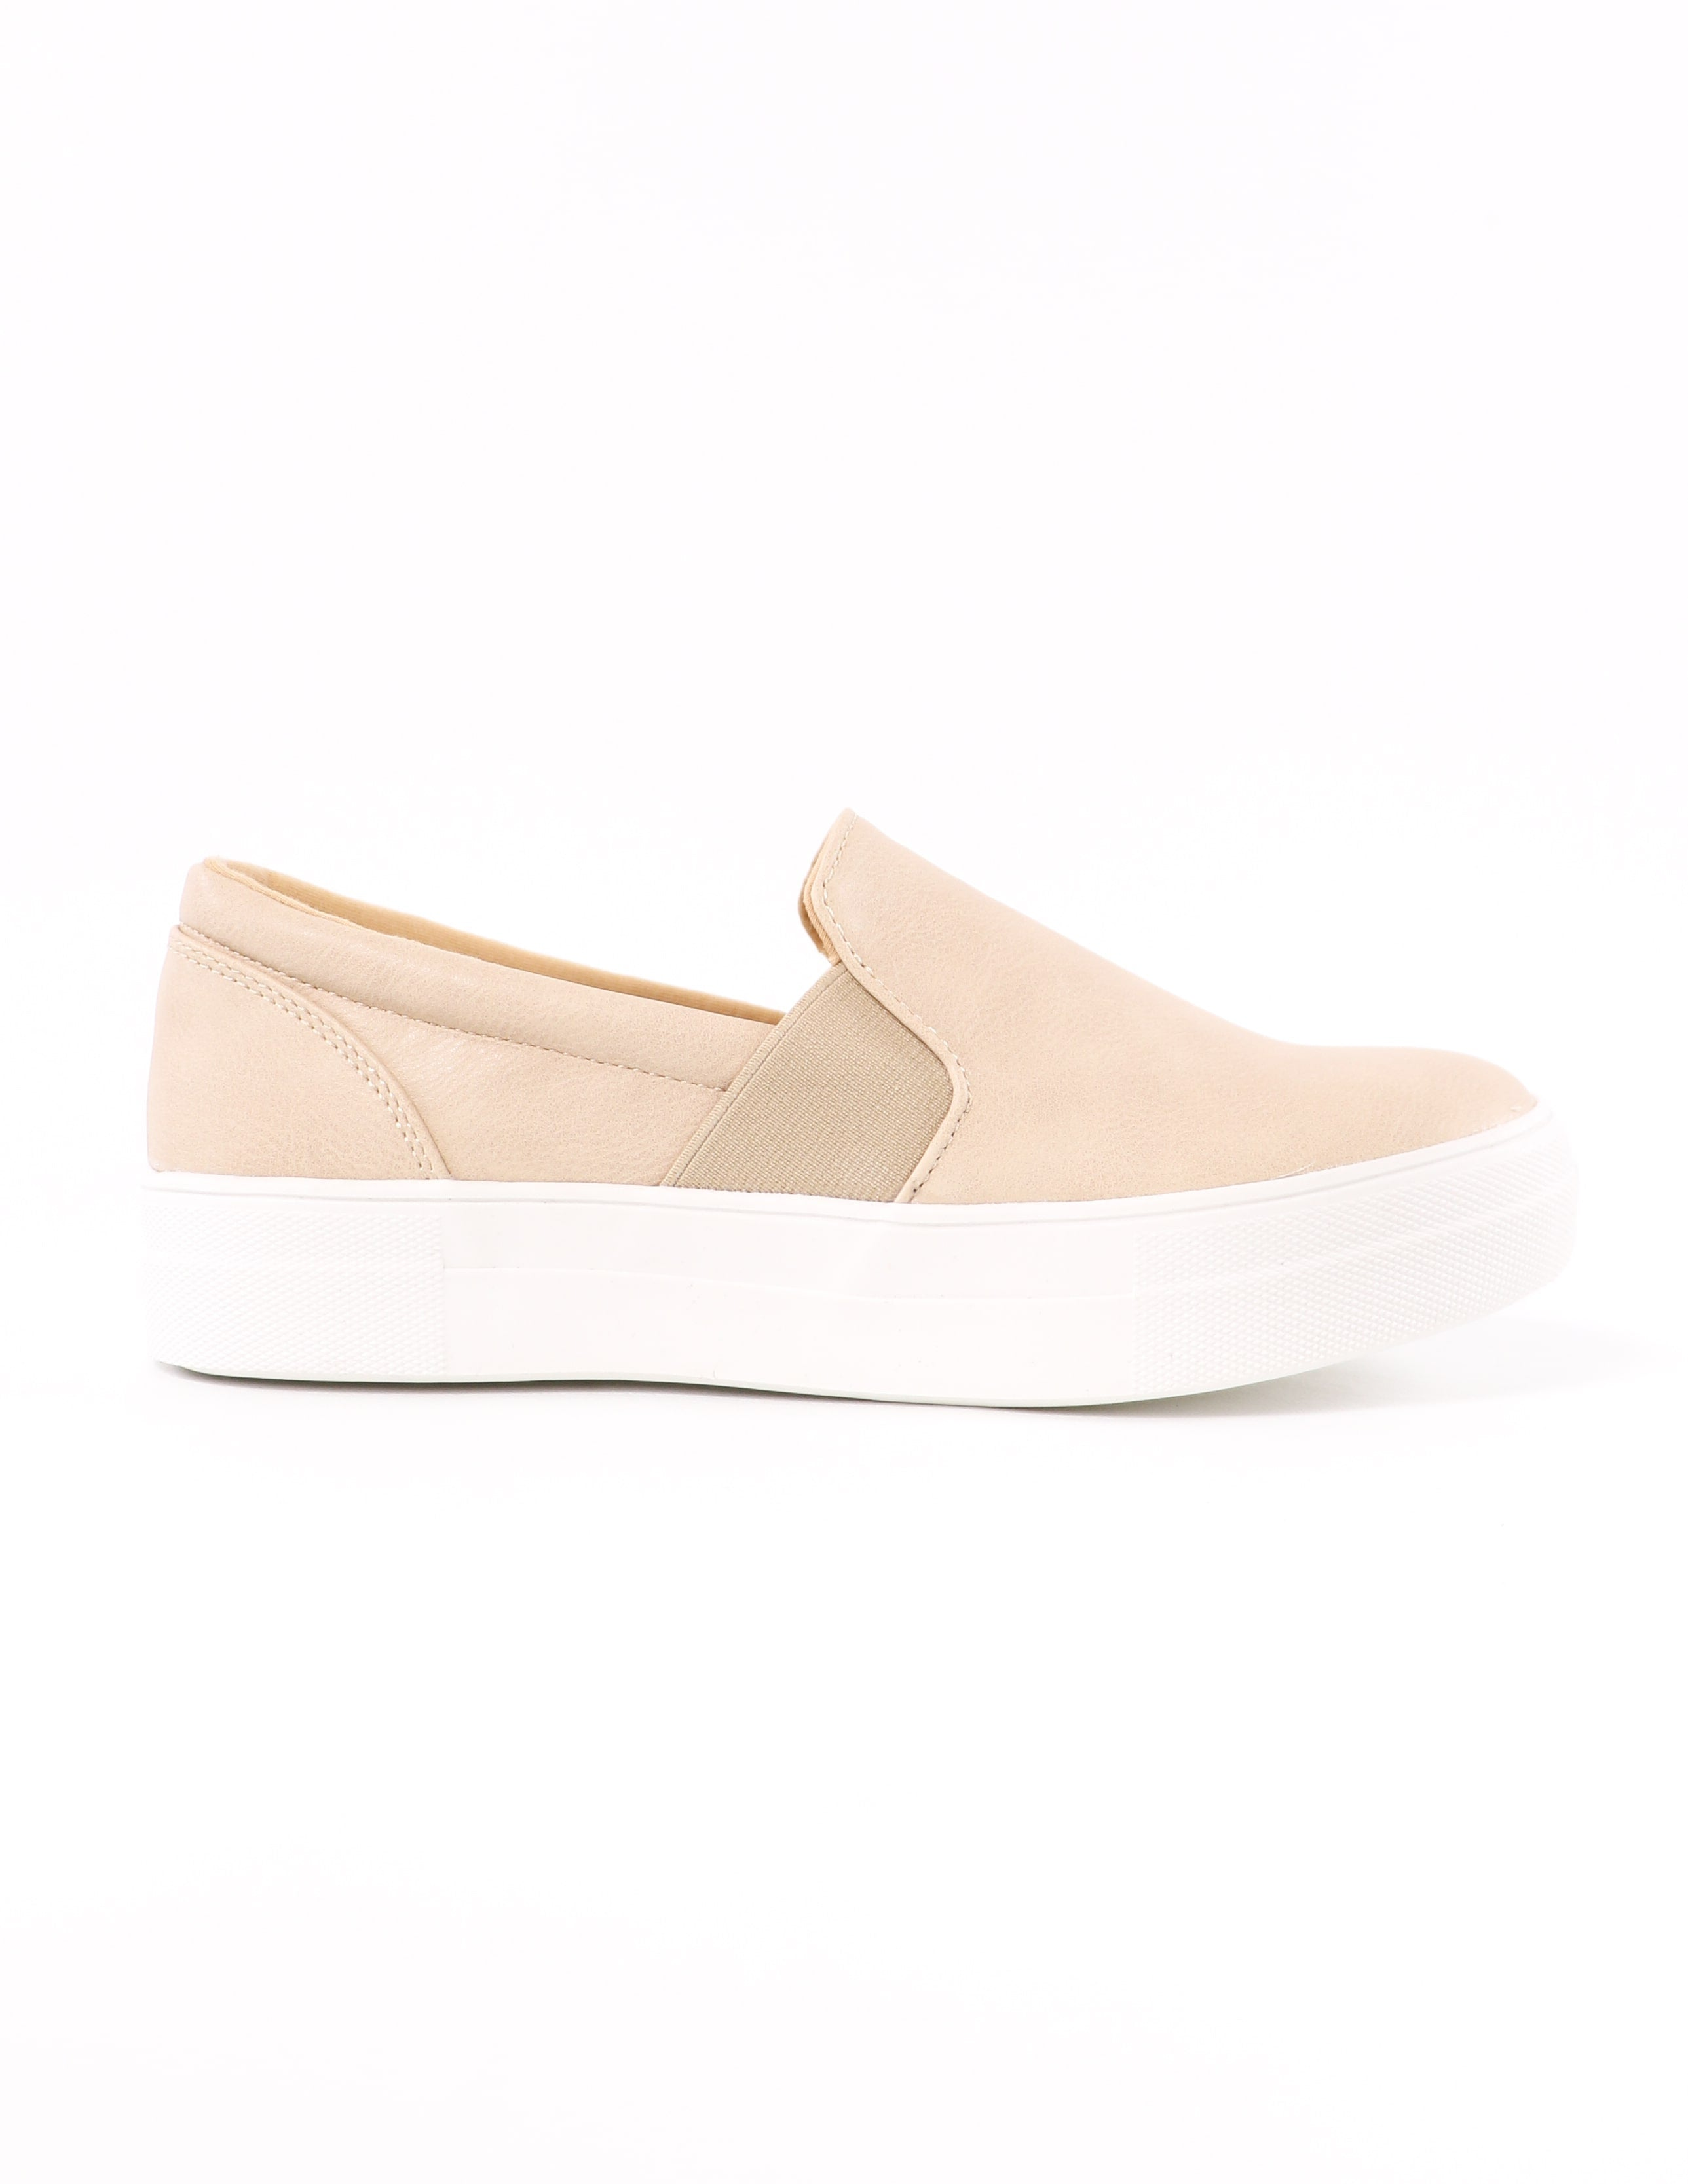 kickin' it sole-o natural slip on sneaker on white background - elle bleu shoes